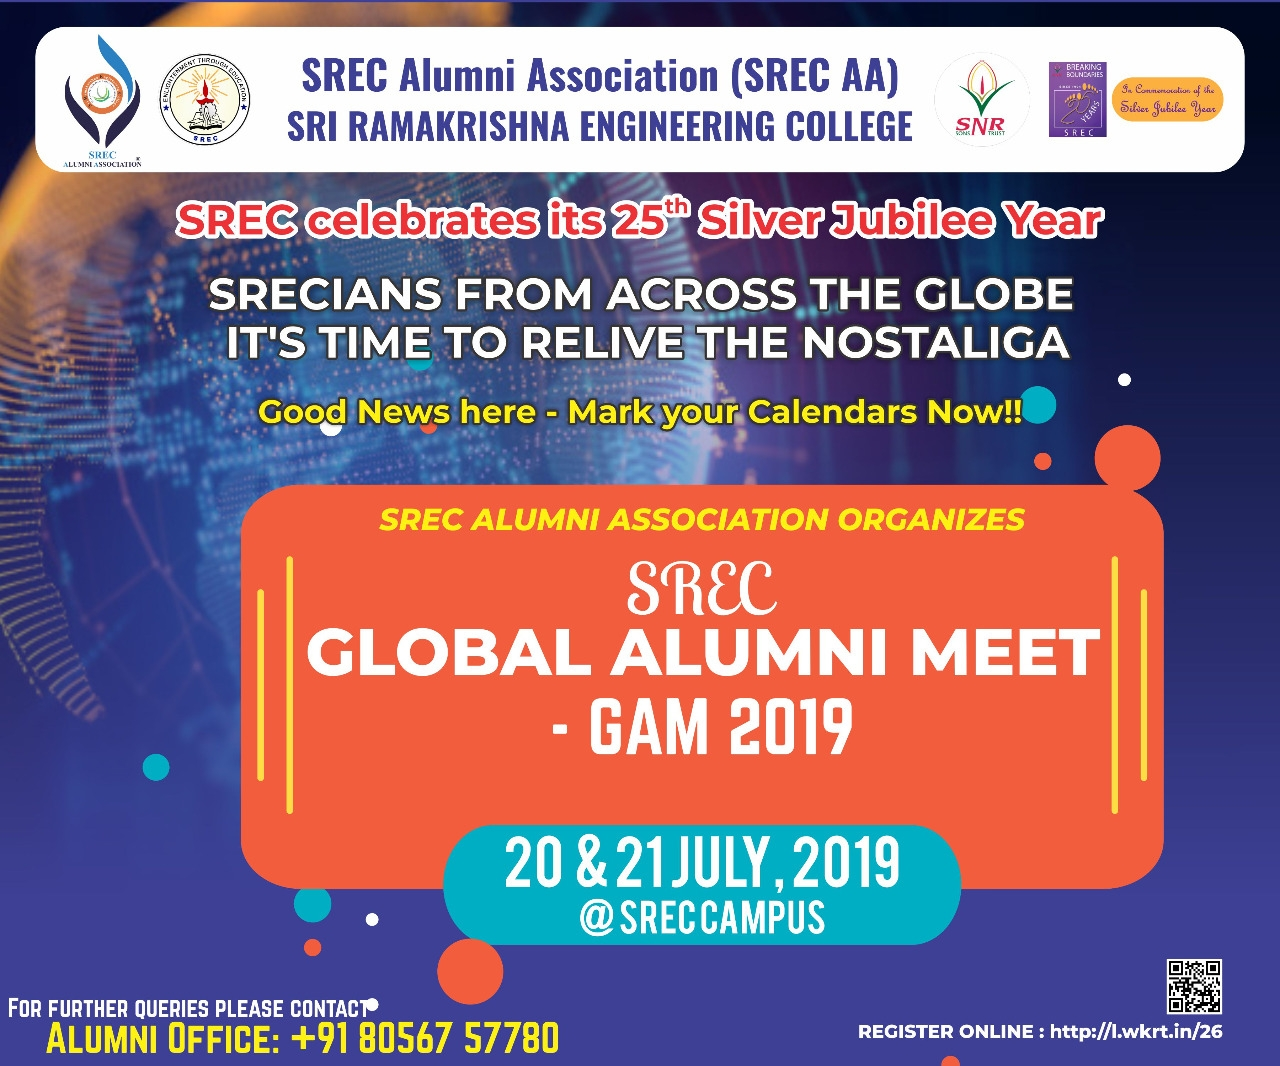 SREC- Global Alumni Meet- GAM 2019